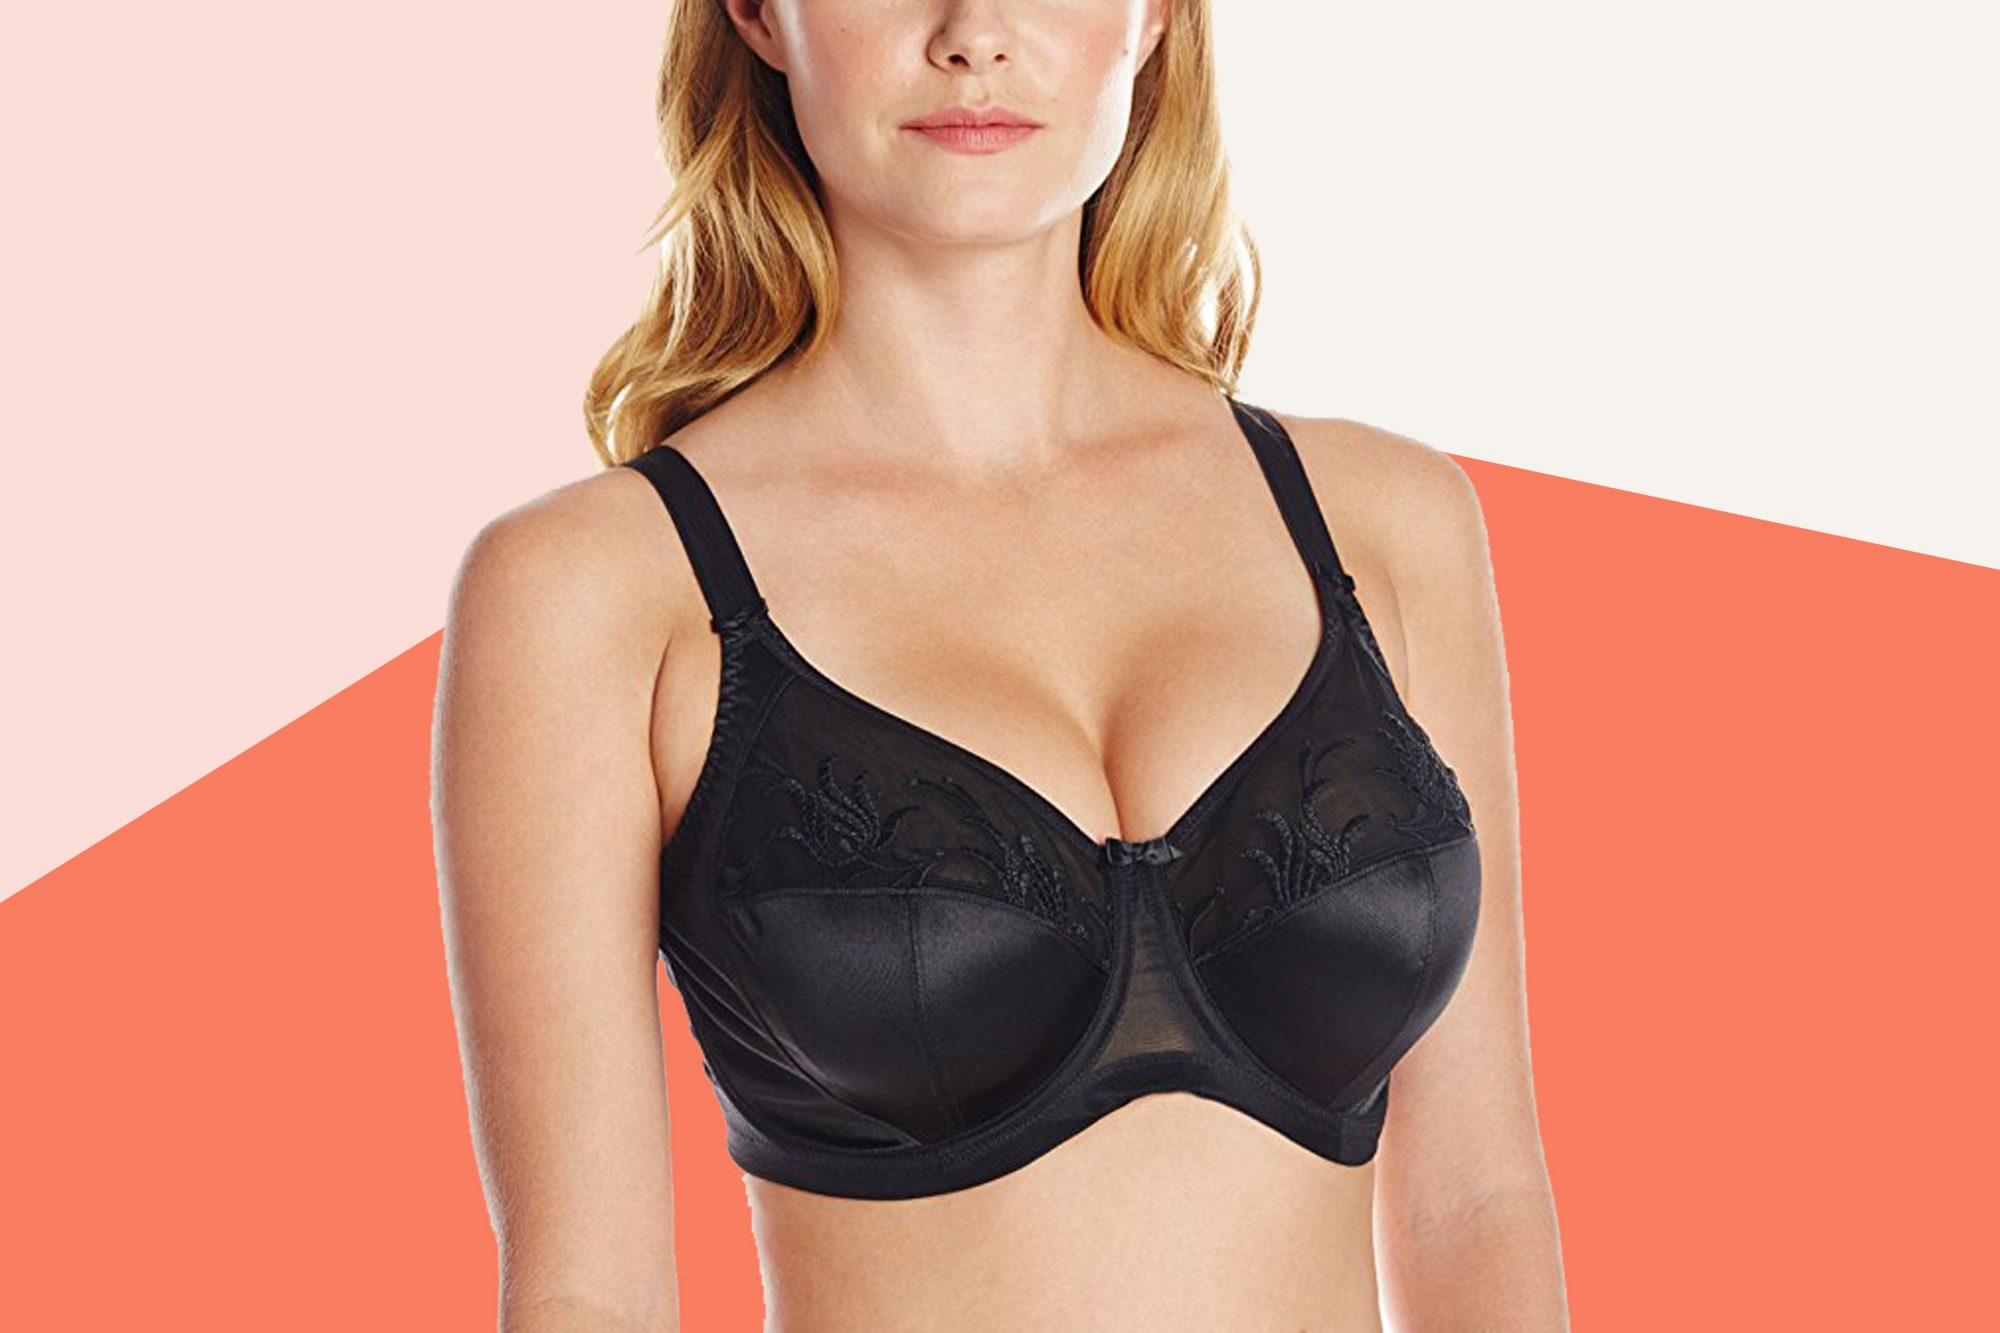 fe9f15f6b87 The Foolproof Way to Find Your Real Bra Size